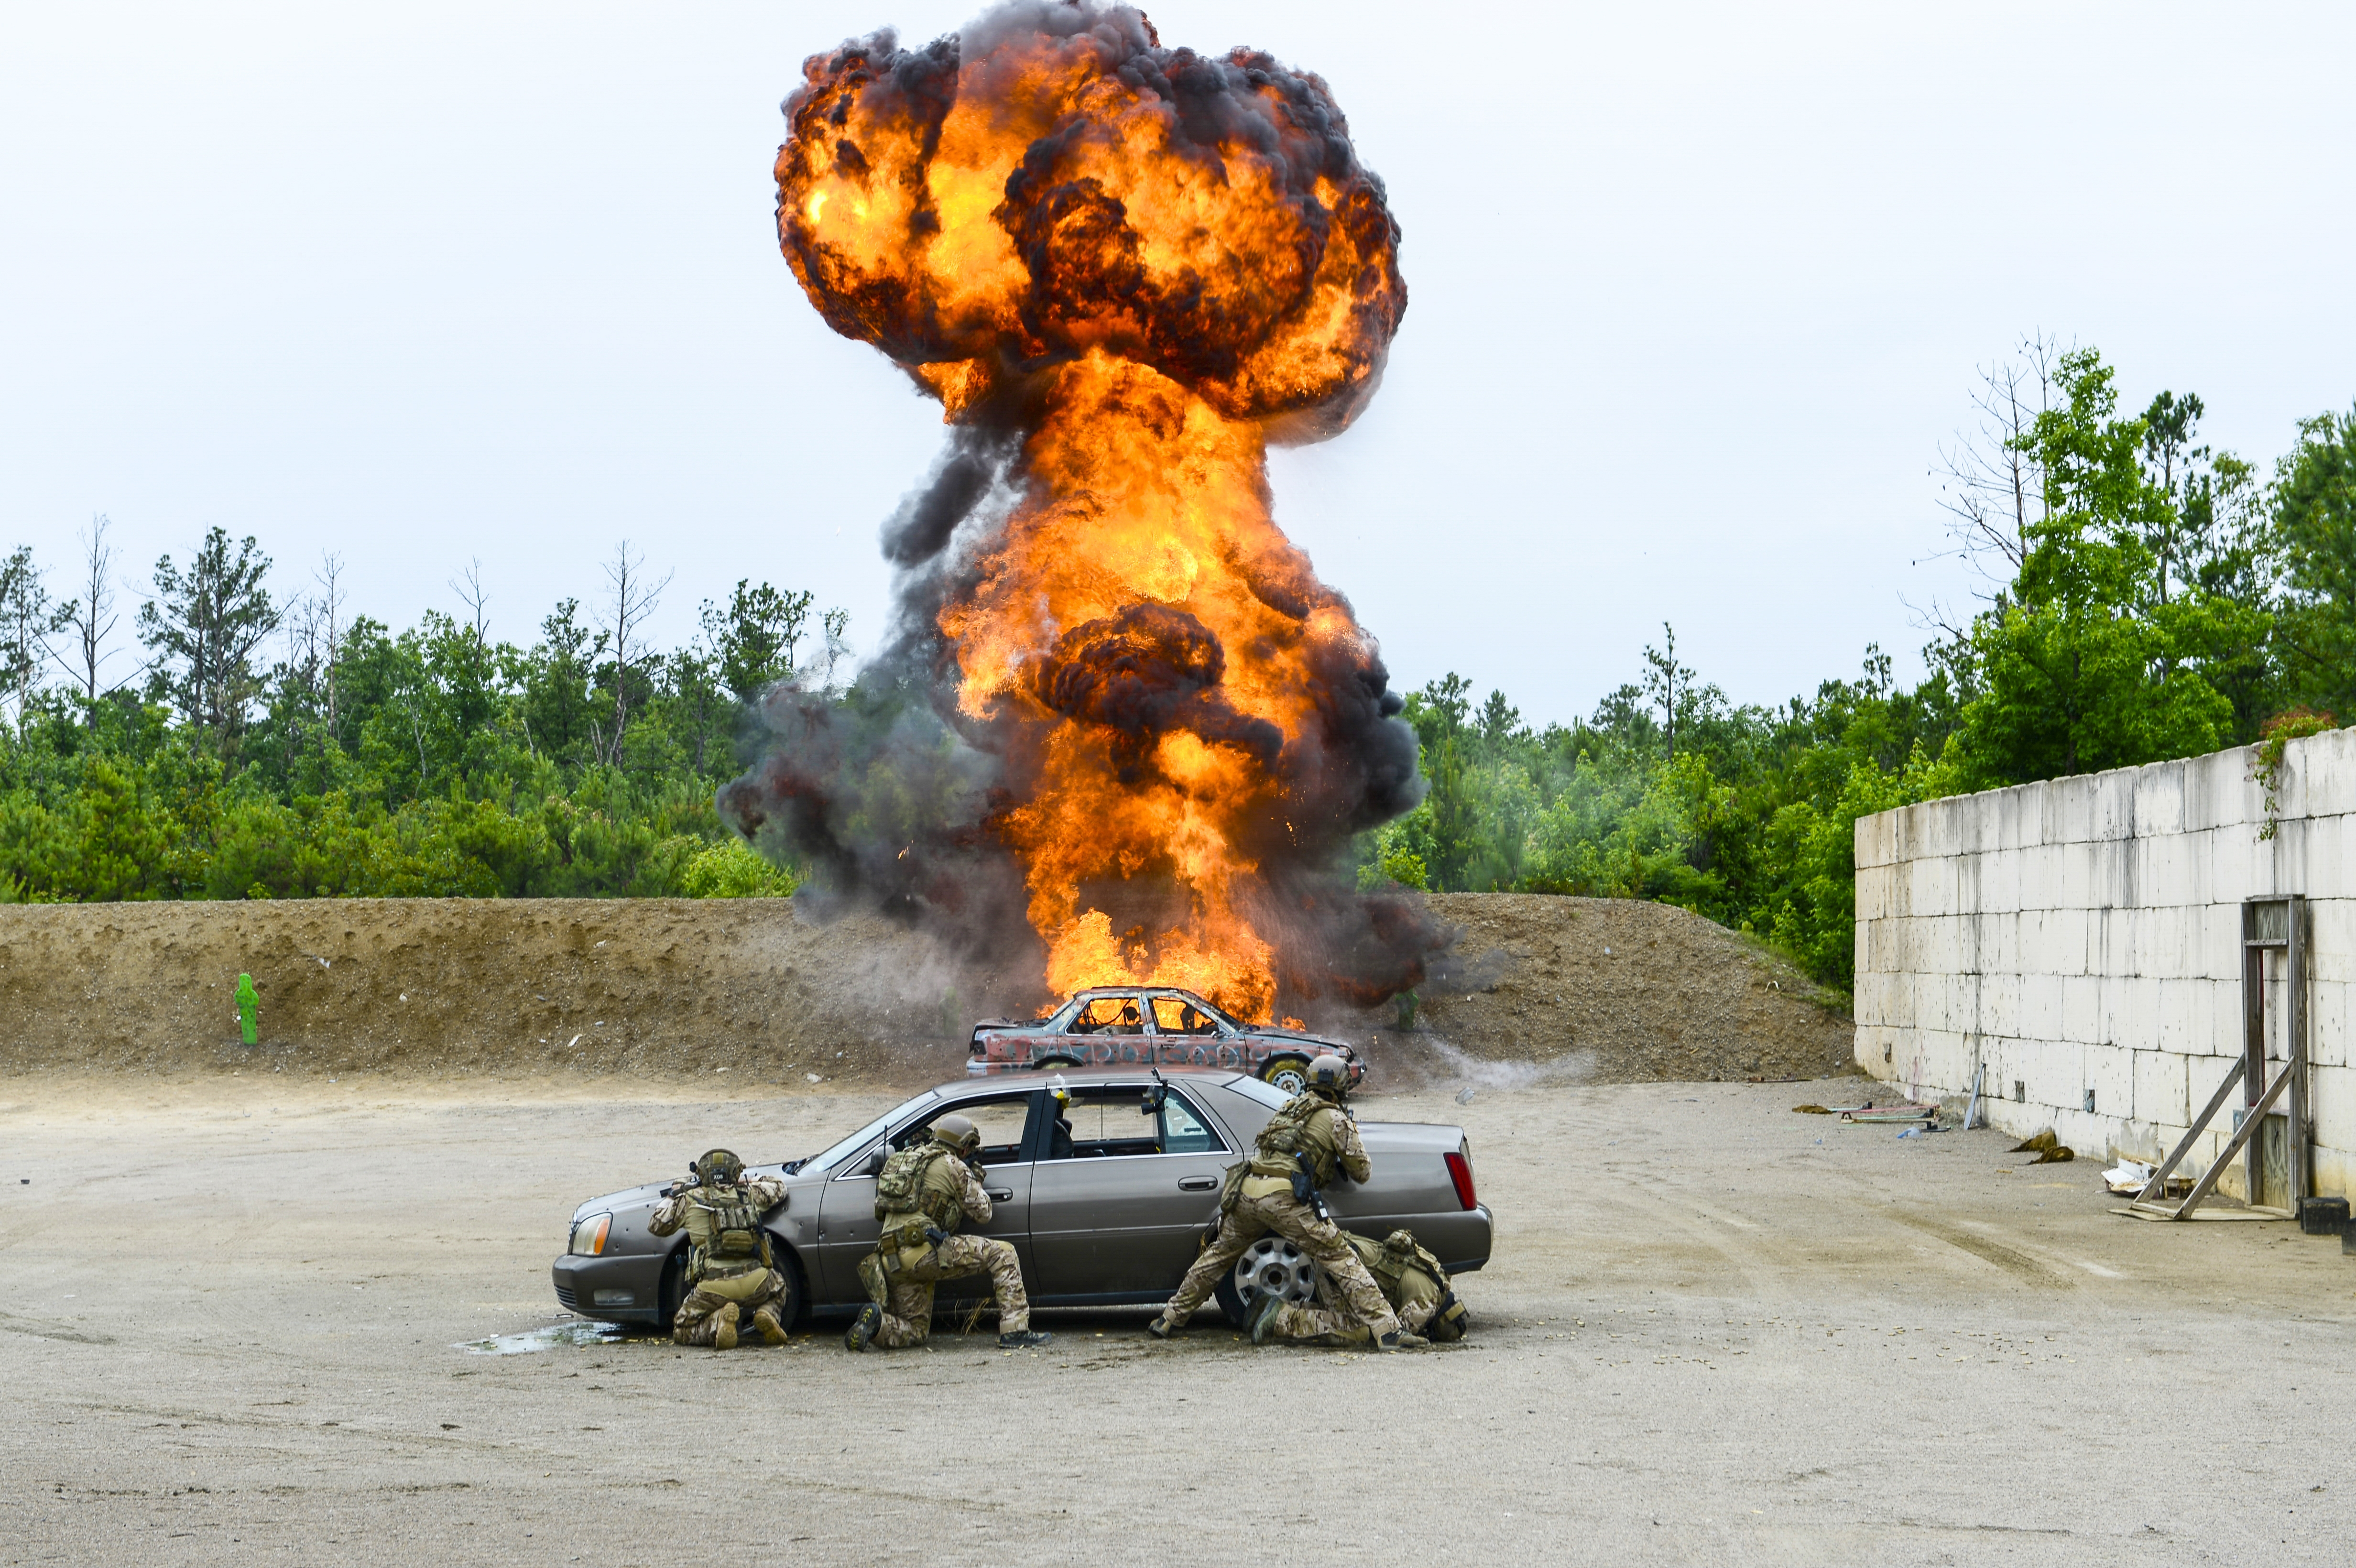 Army special operators engage an enemy vehicle